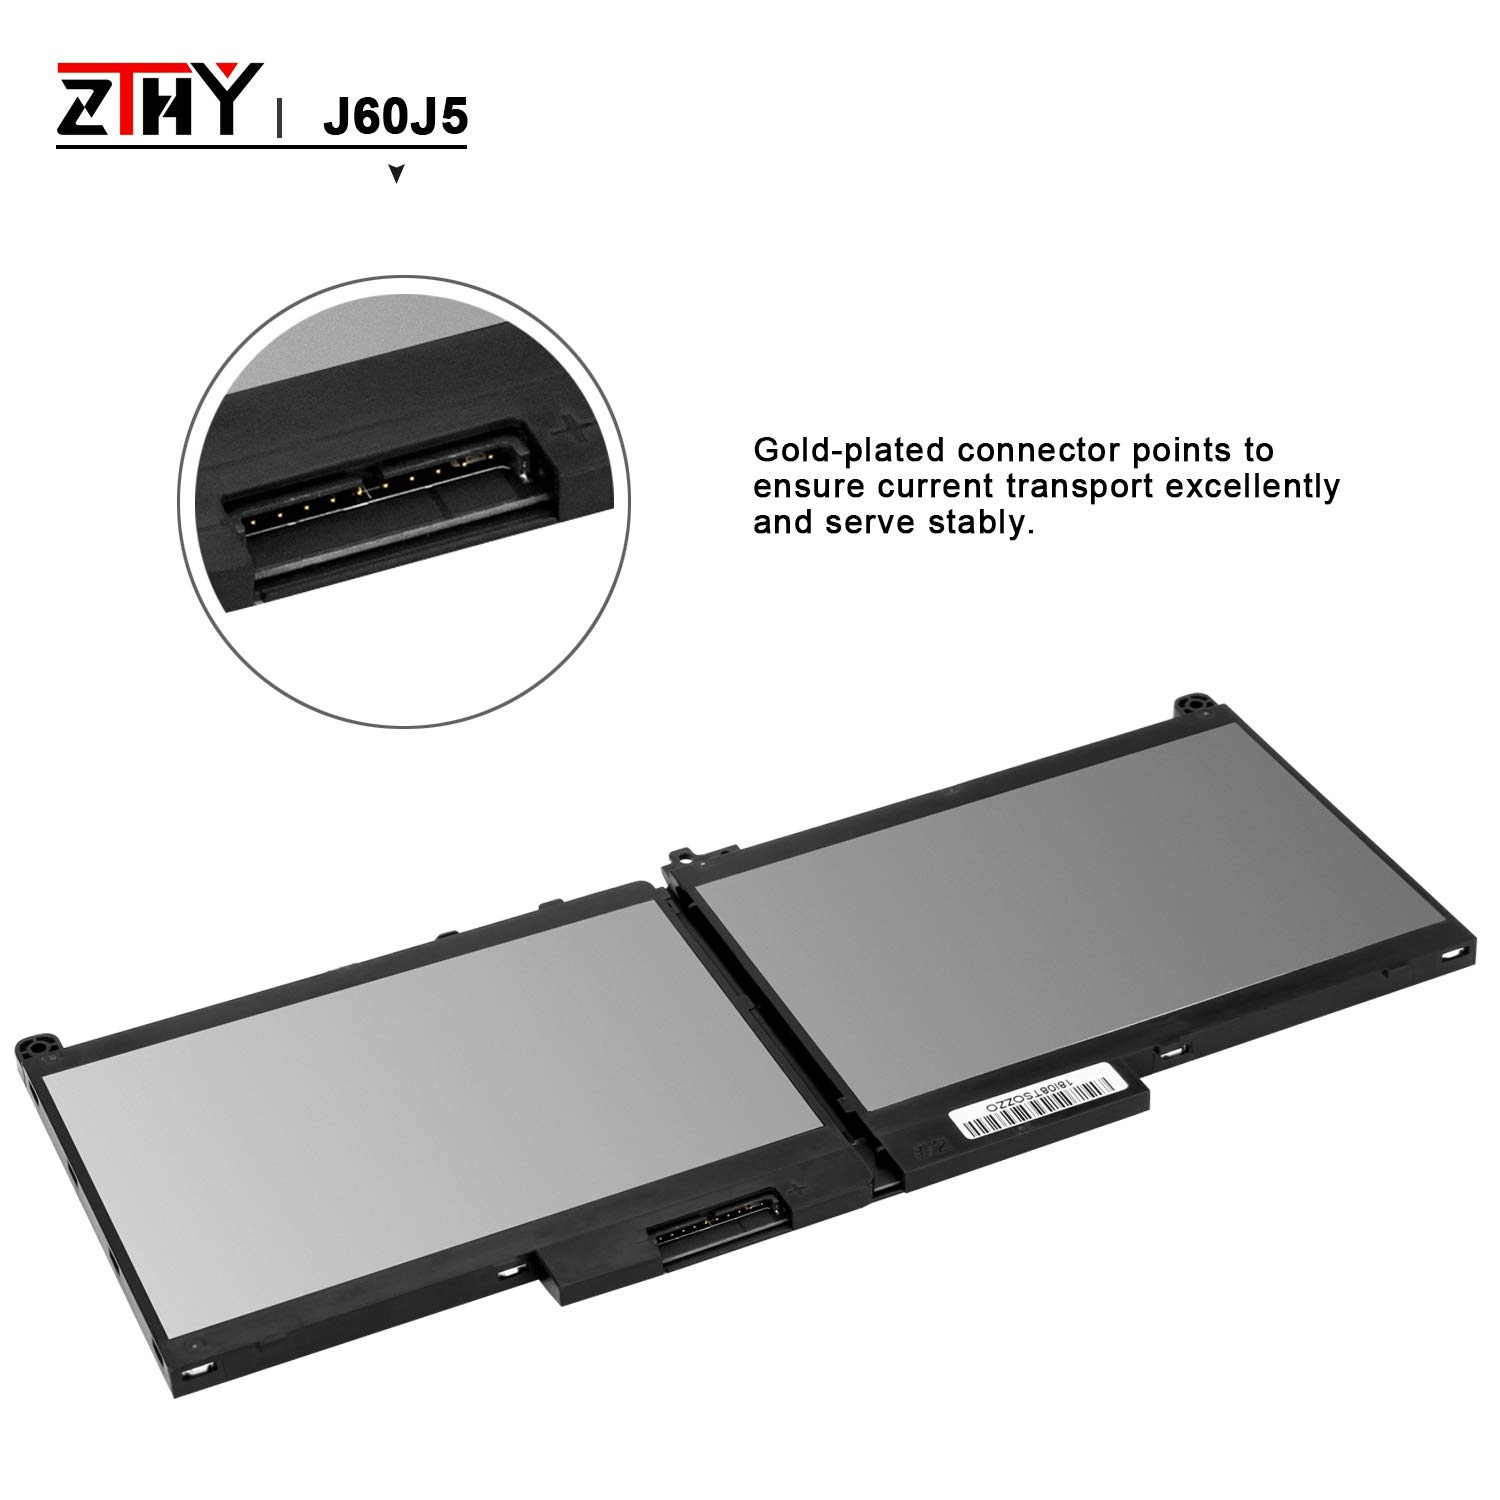 ZTHY J60J5 Laptop Battery Replacement for Dell Latitude E7270 E7470 Series Notebook R1V85 451-BBSX 451-BBSY 451-BBSU MC34Y 242WD PDNM2 7.6V 55WH by ZTHY (Image #5)